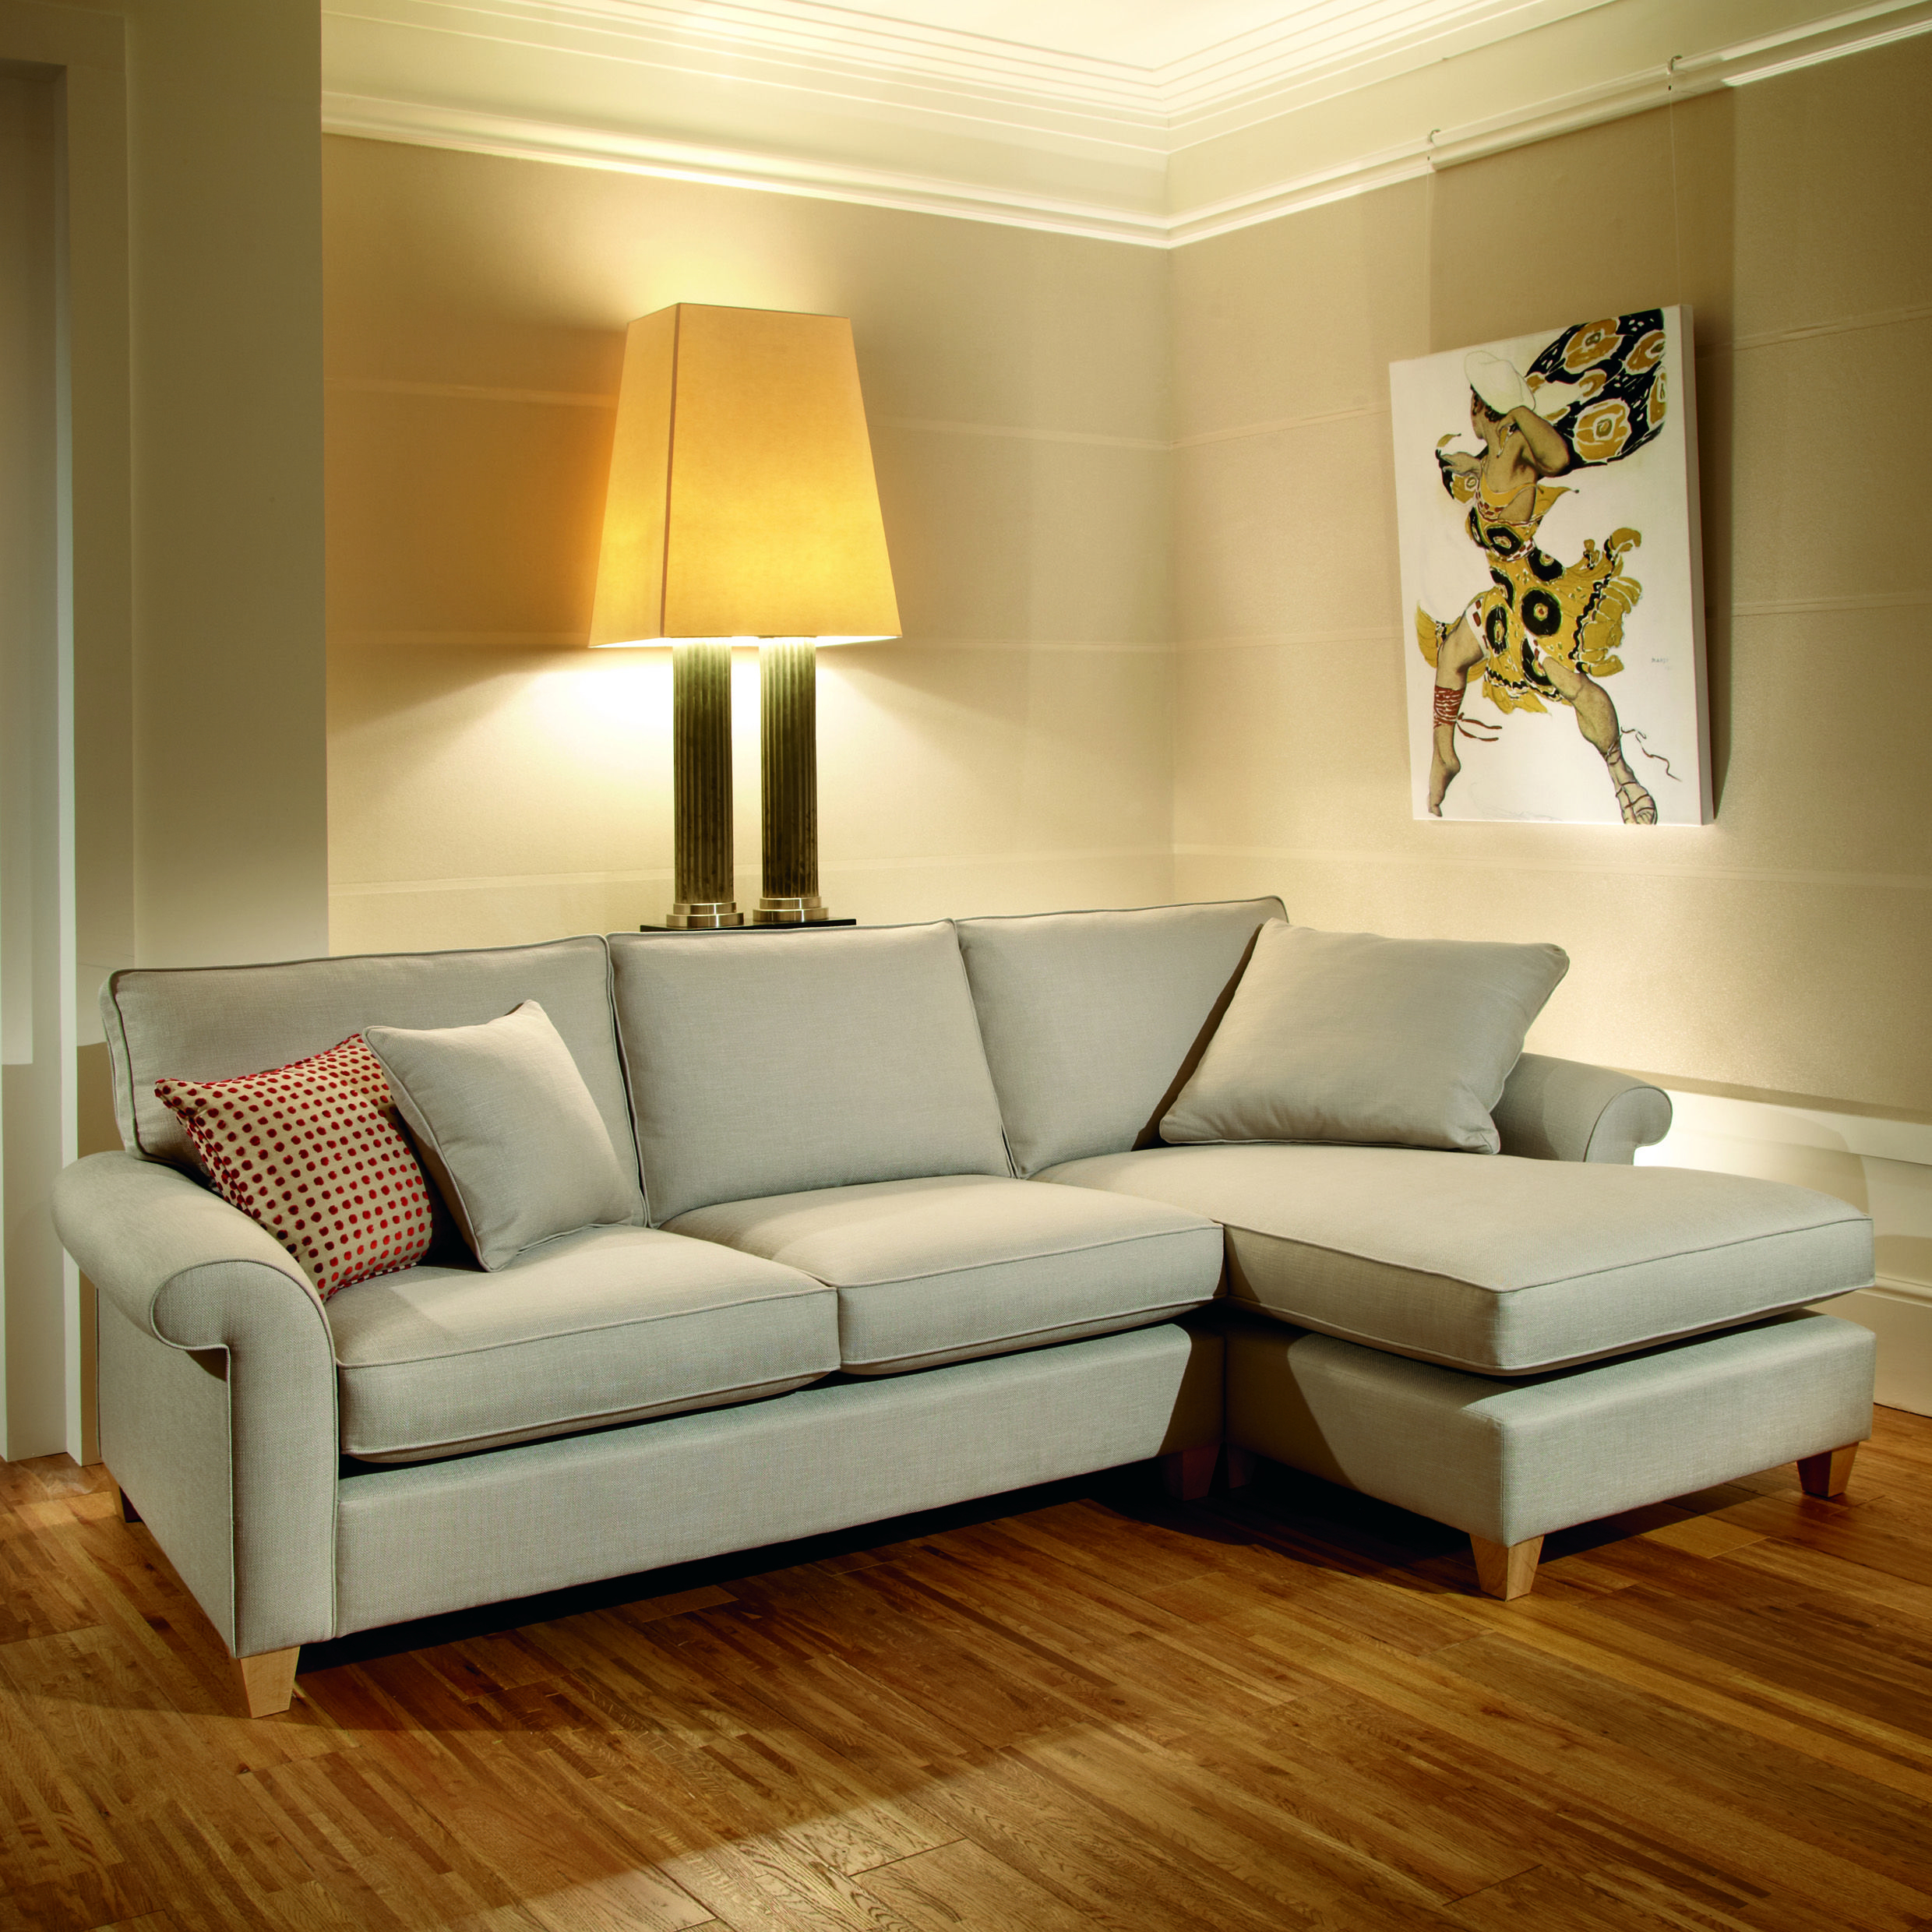 The Tate Corner Sectional Group. | Duresta Domus | Pinterest Throughout Tate Arm Sofa Chairs (Photo 14 of 20)